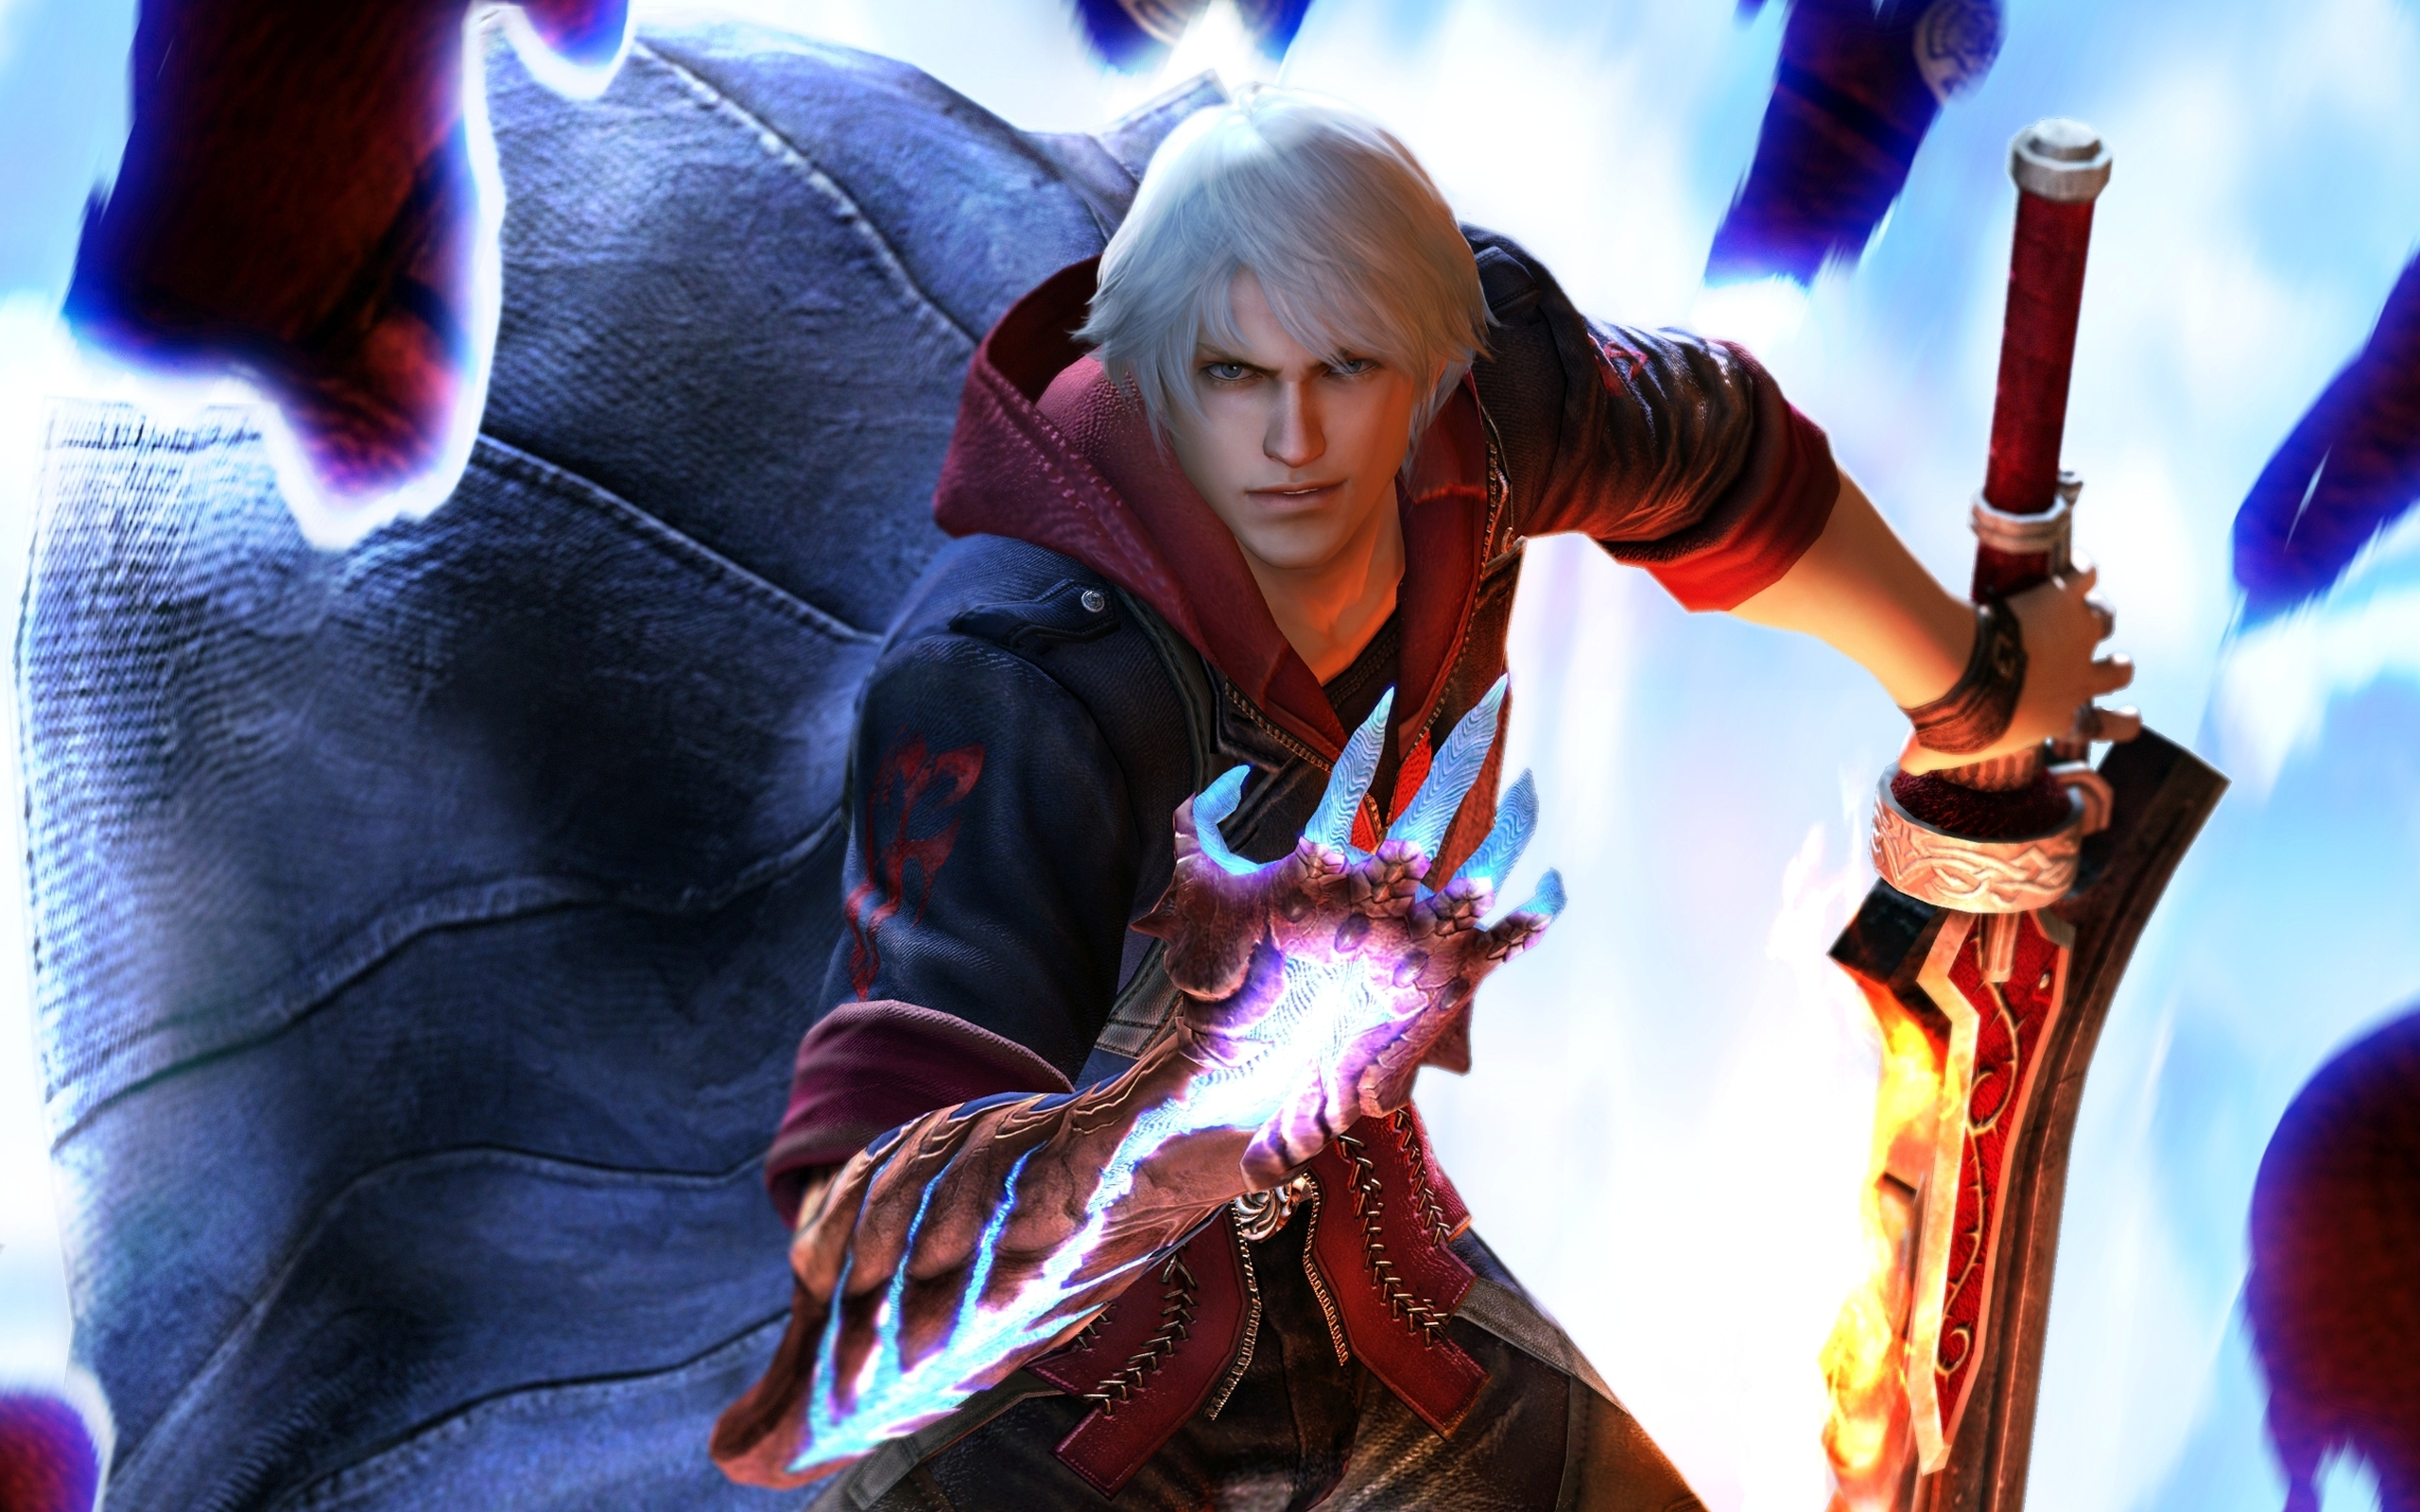 Devil May Cry 4 Fondo De Pantalla Hd Fondo De Escritorio